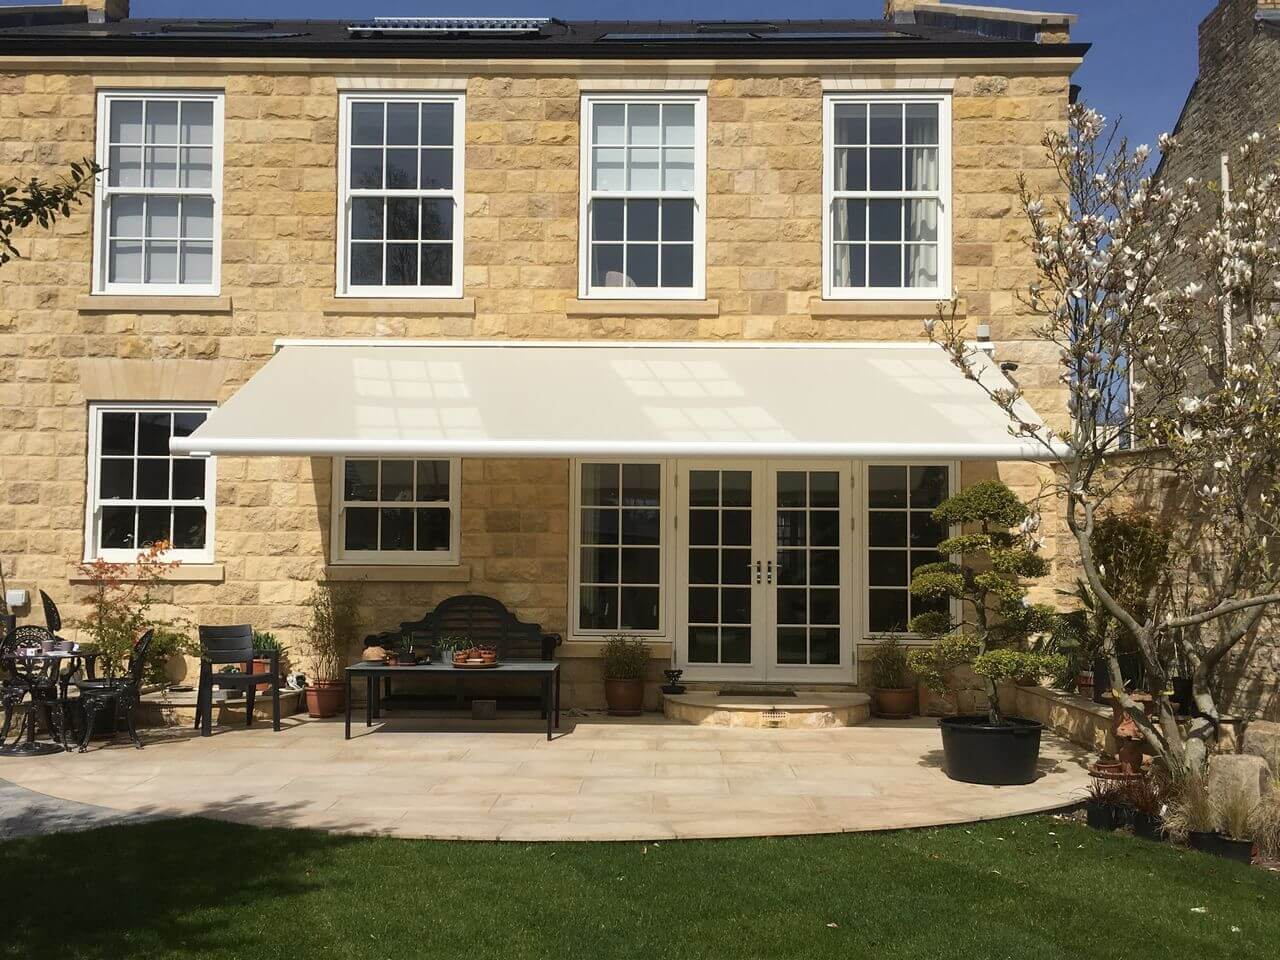 Markilux 6000 electric awning fitted to stone house over a patio